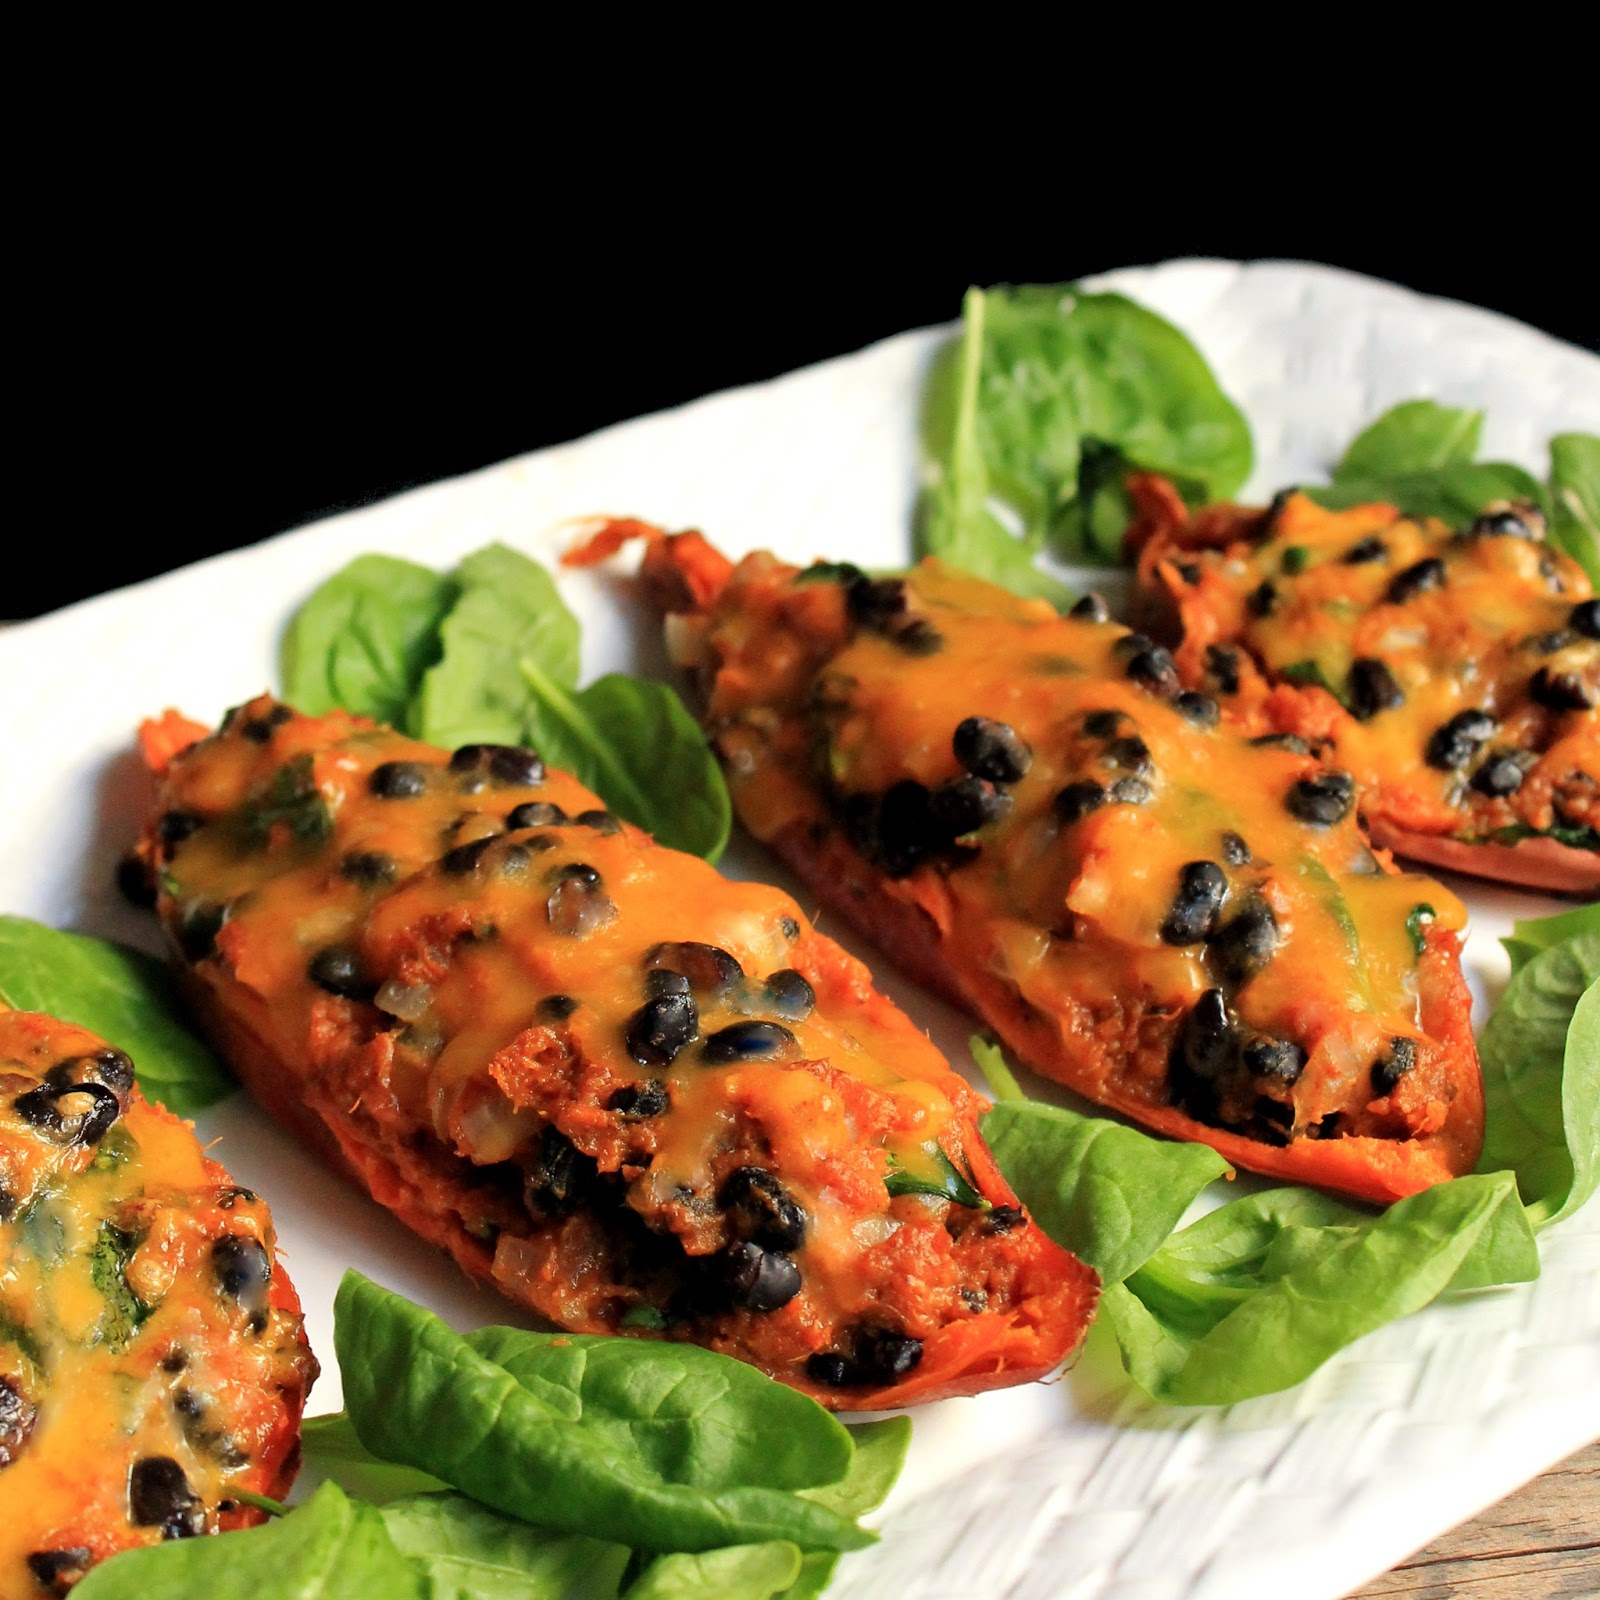 I M Bringing You Another Stuffed Sweet Potato Today I Make These Sweet Potato Burritos That My Family Loves Well My Siblings Call It Dang Hippy Food